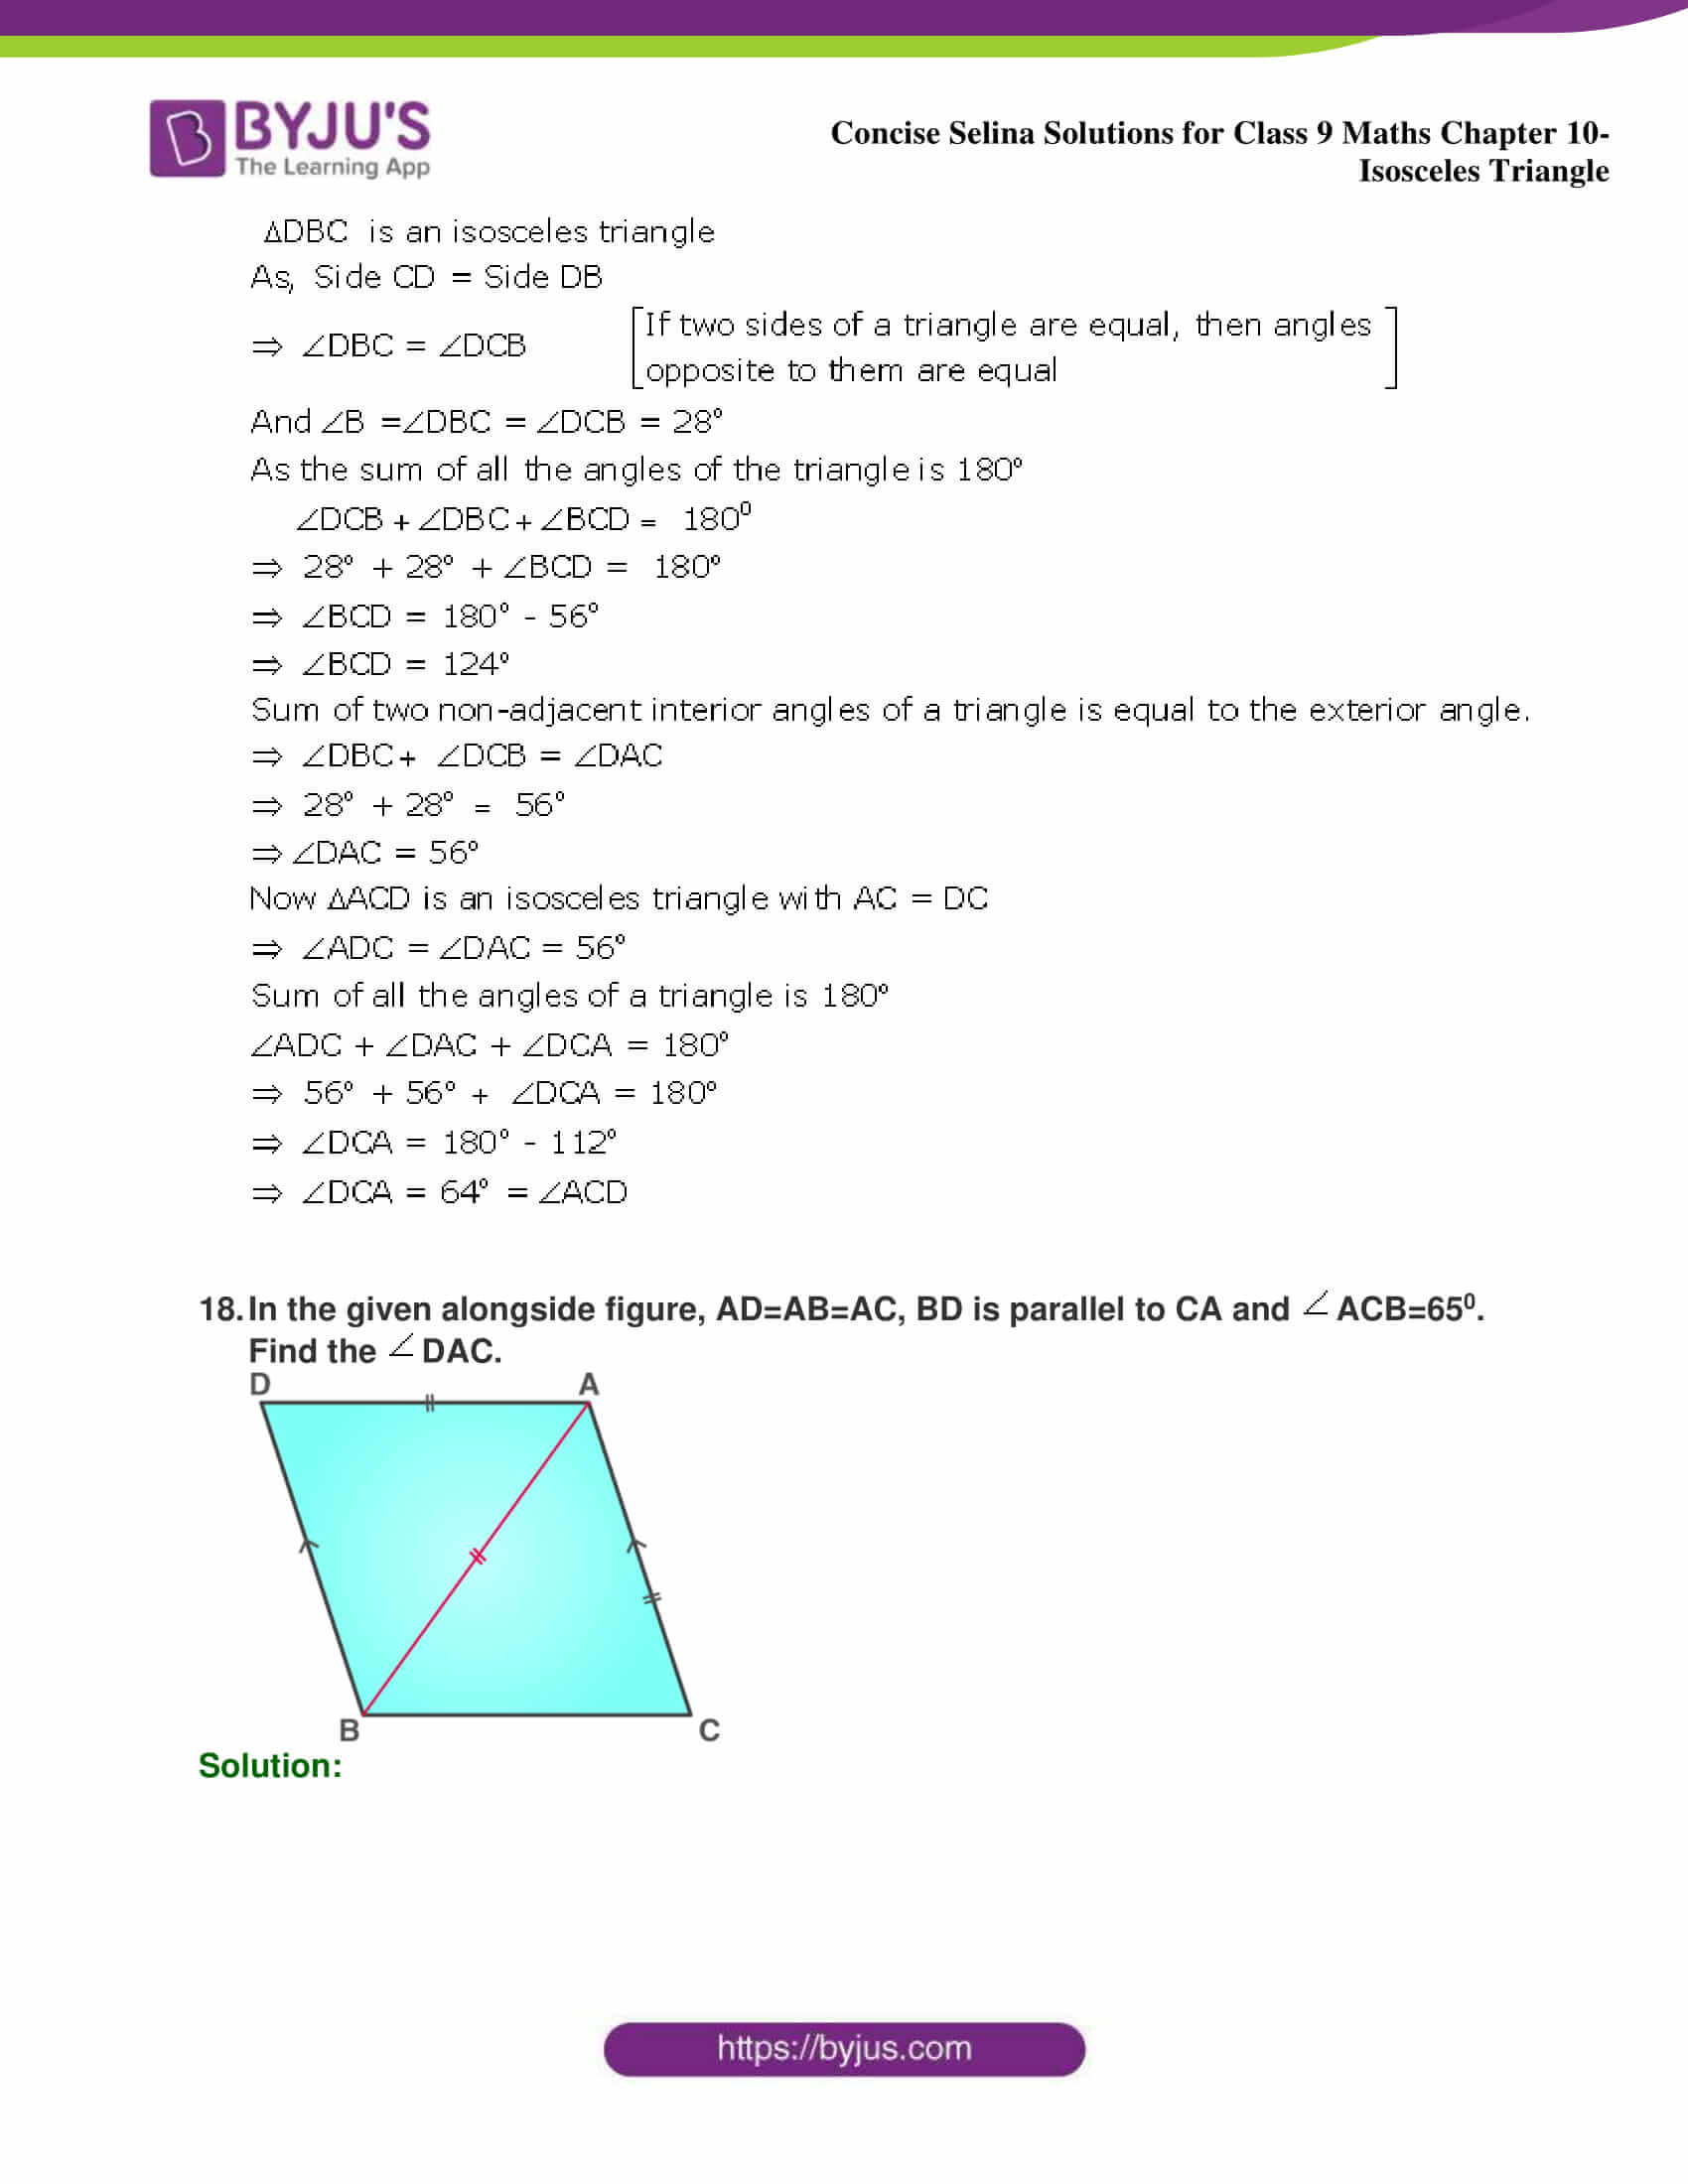 selina Solutions for Class 9 Maths Chapter 10 part 17